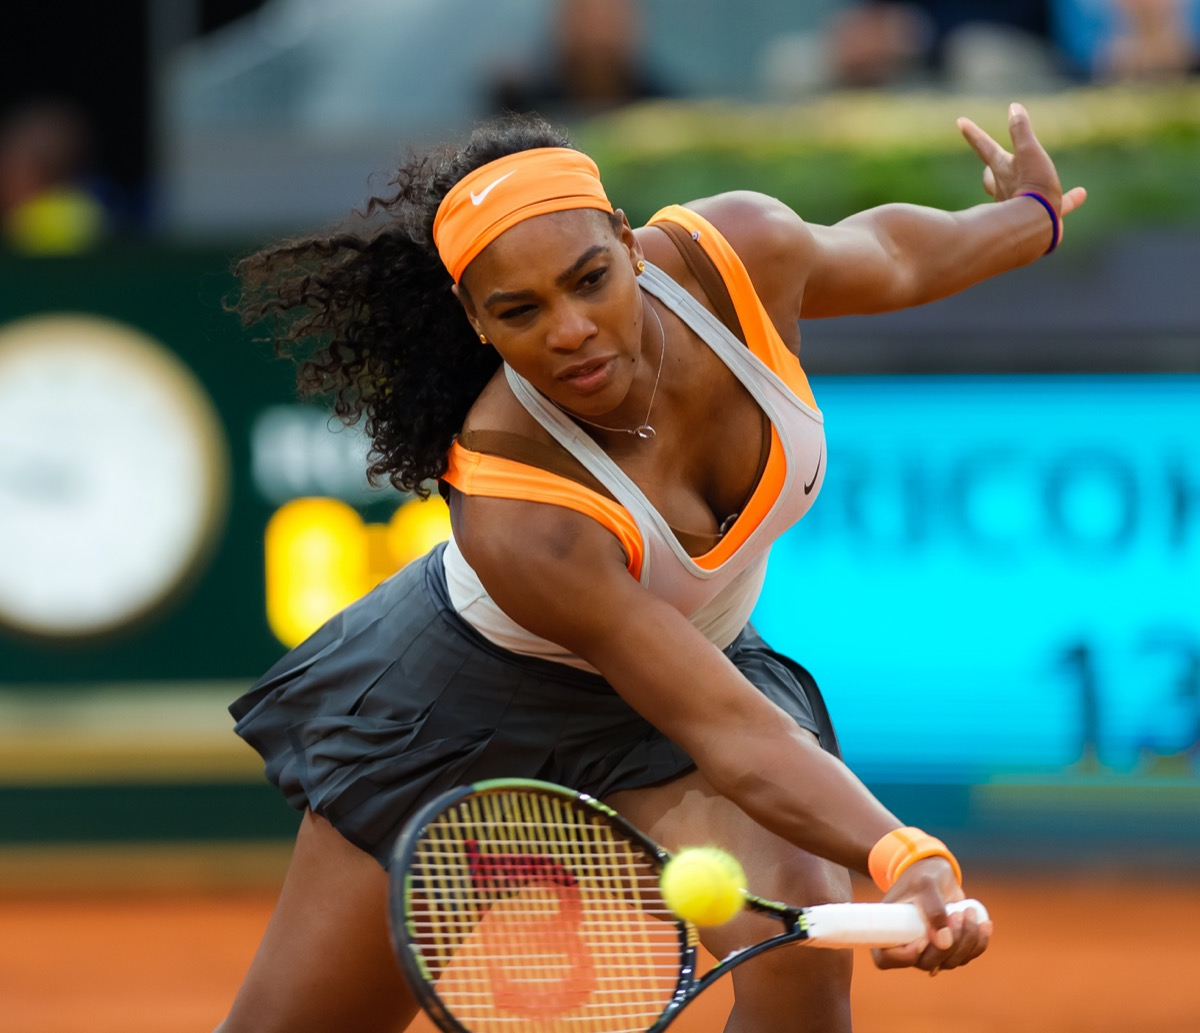 Serena Williams competing at the 2015 Madrid Open